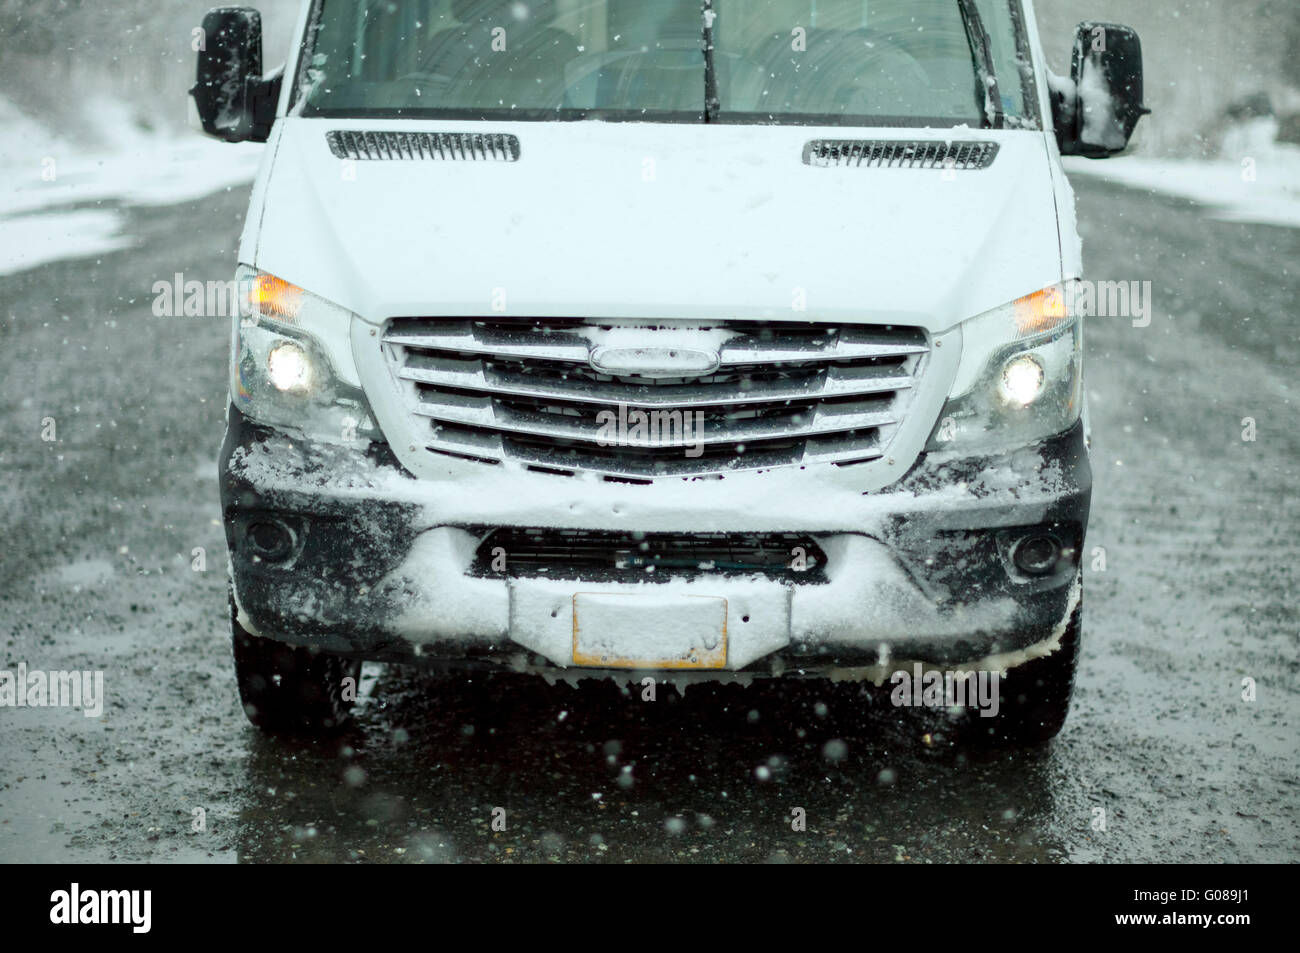 Sprinter Van by Freightliner in winter driving conditions in the back roads of Alaska - Stock Image